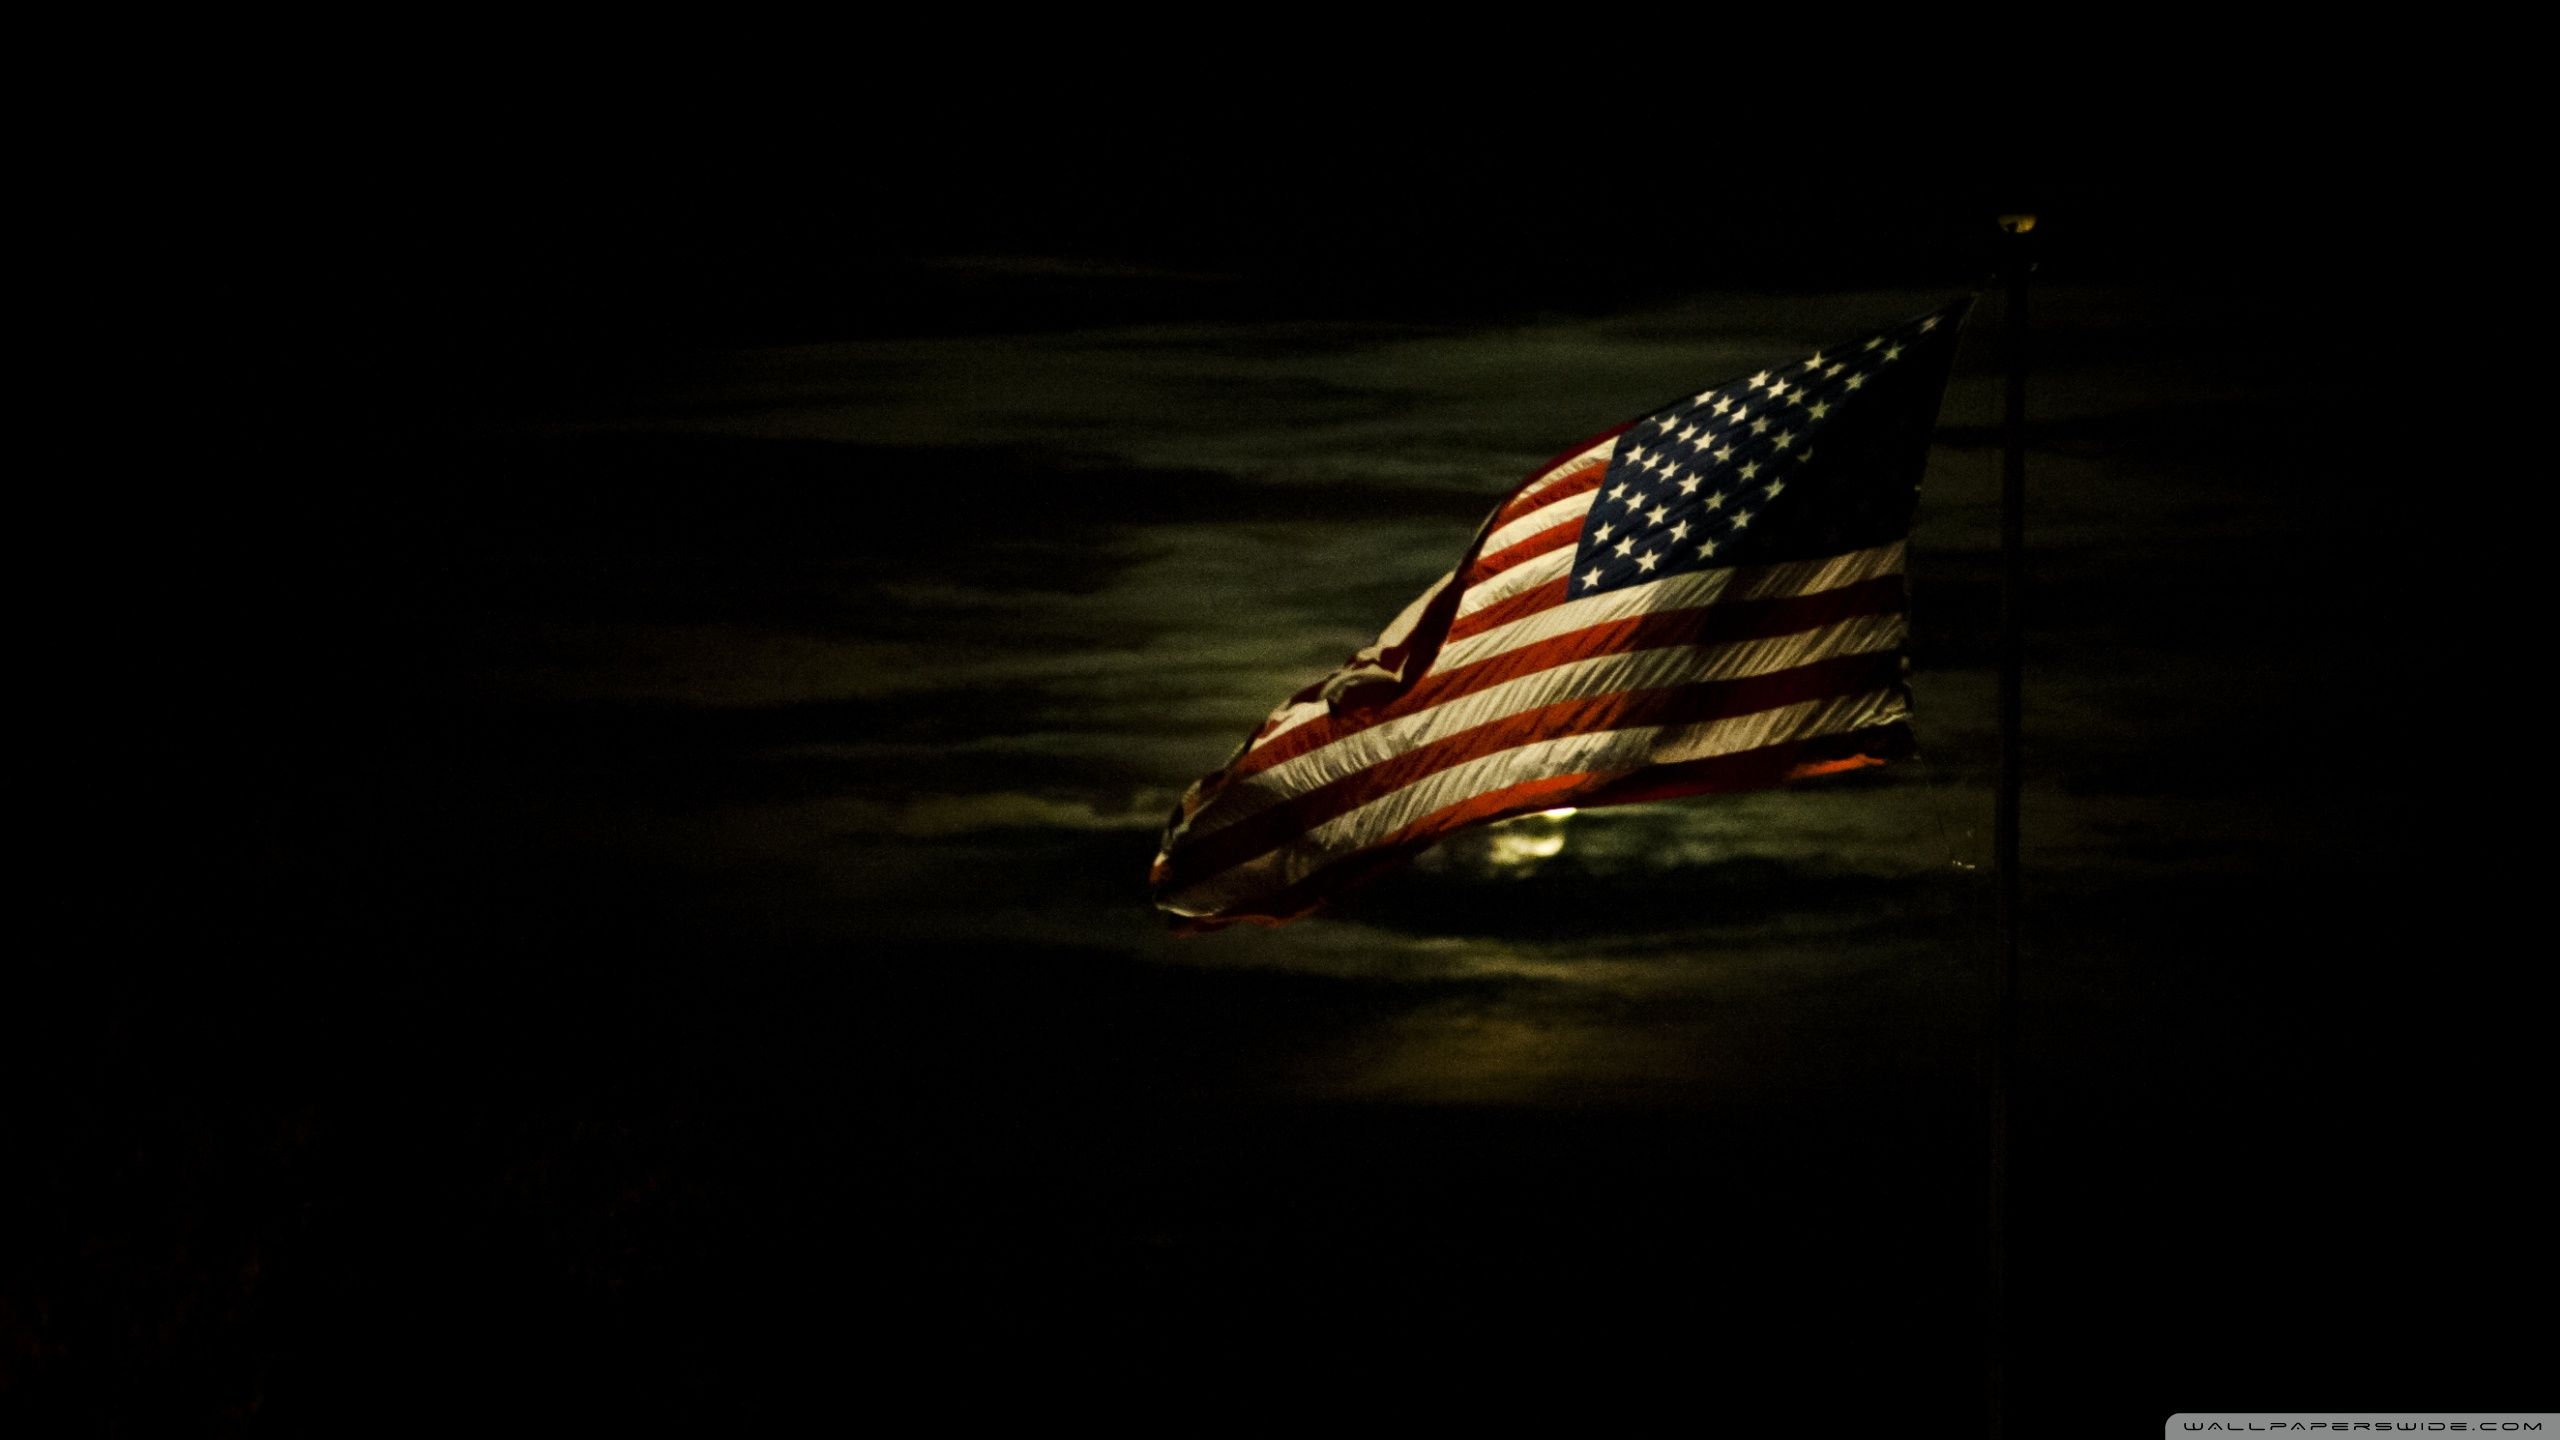 2560x1440 - US Army Screensavers and Wallpaper 20